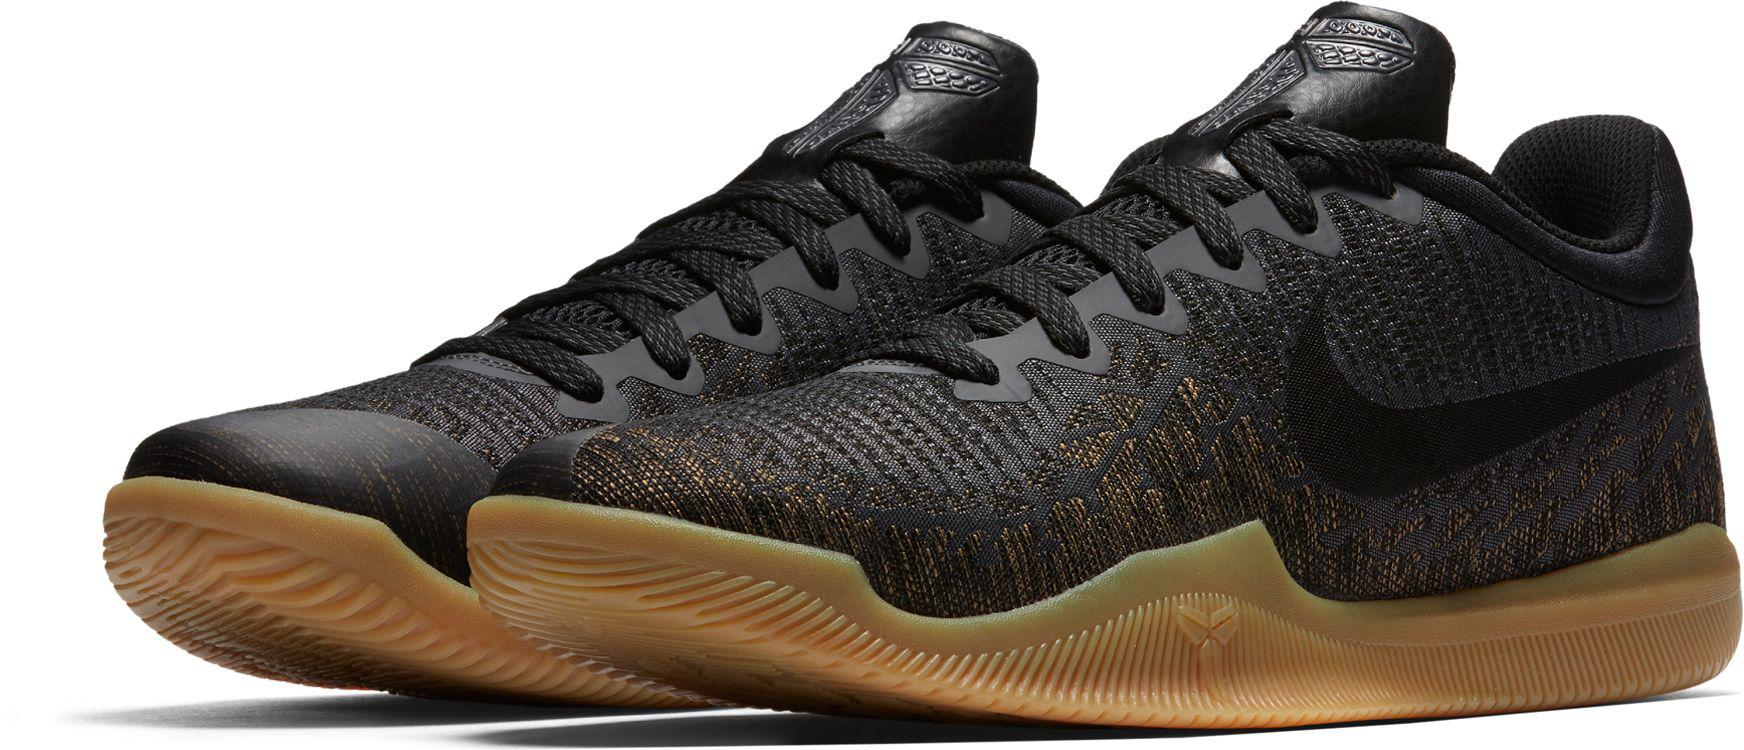 reputable site a8ca9 743a5 Nike - Black Kobe Mamba Rage Premium Basketball Shoes for Men - Lyst